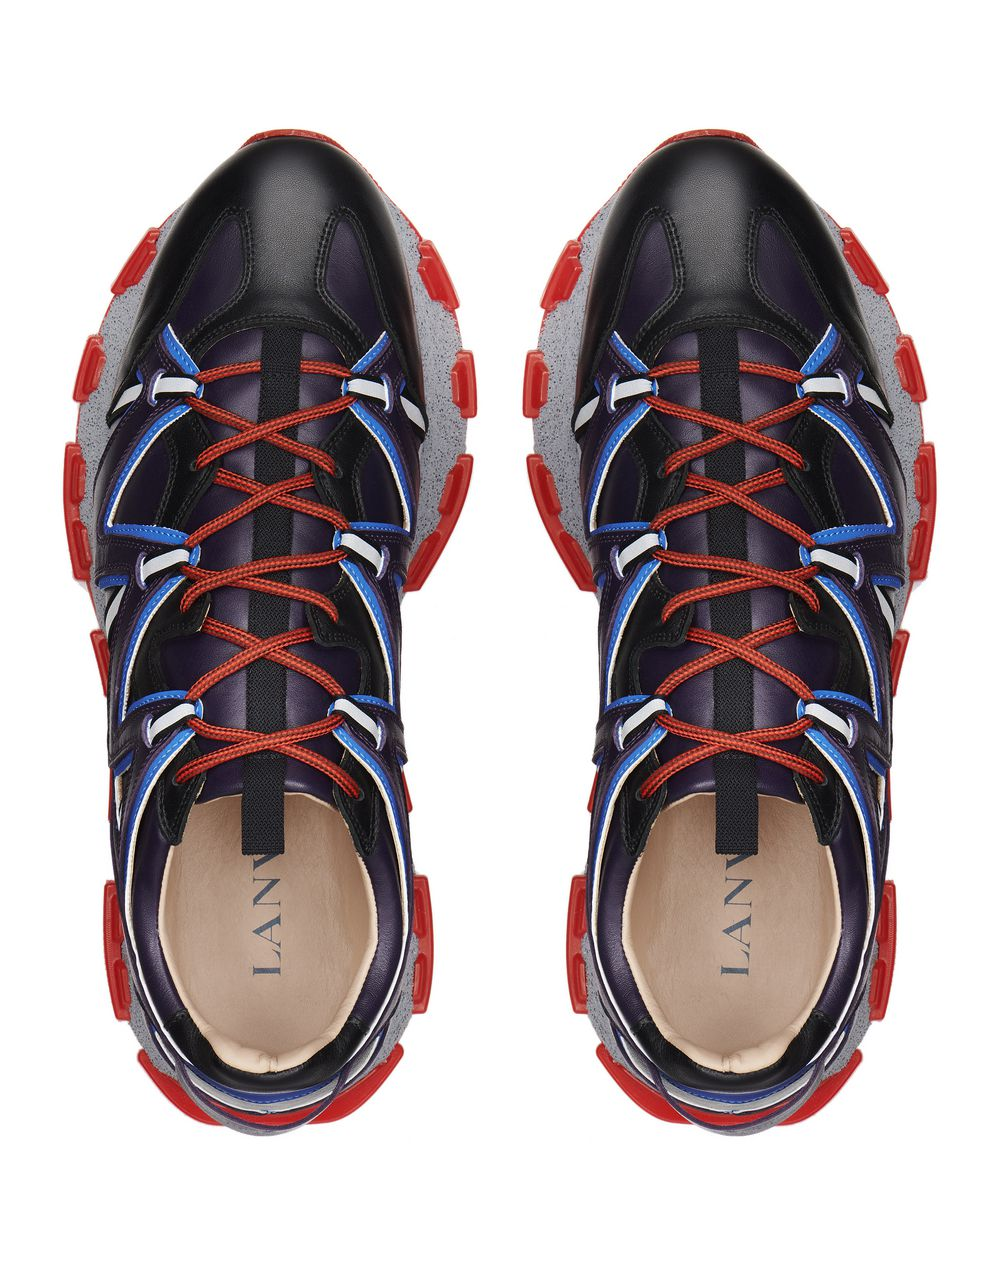 TRAINERS LIGHTNING - Lanvin